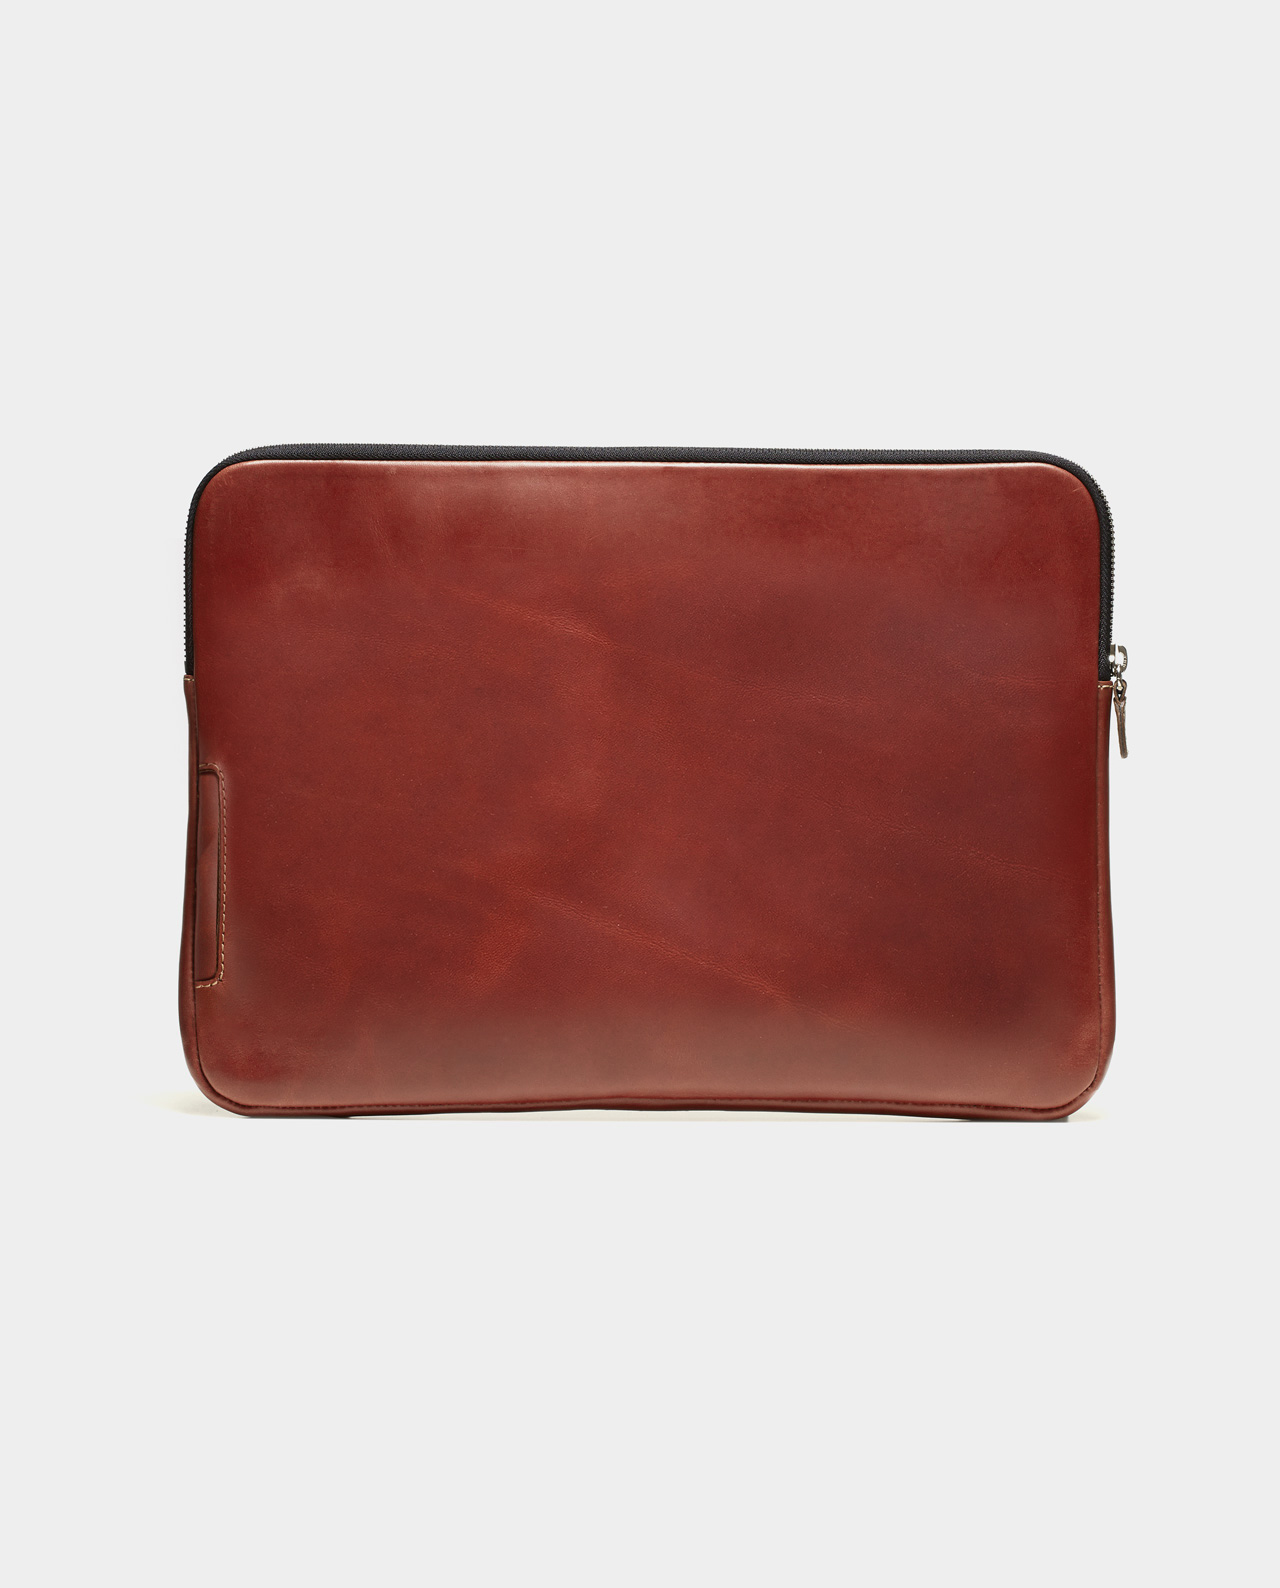 leather portfolio brown for 13 inches laptop